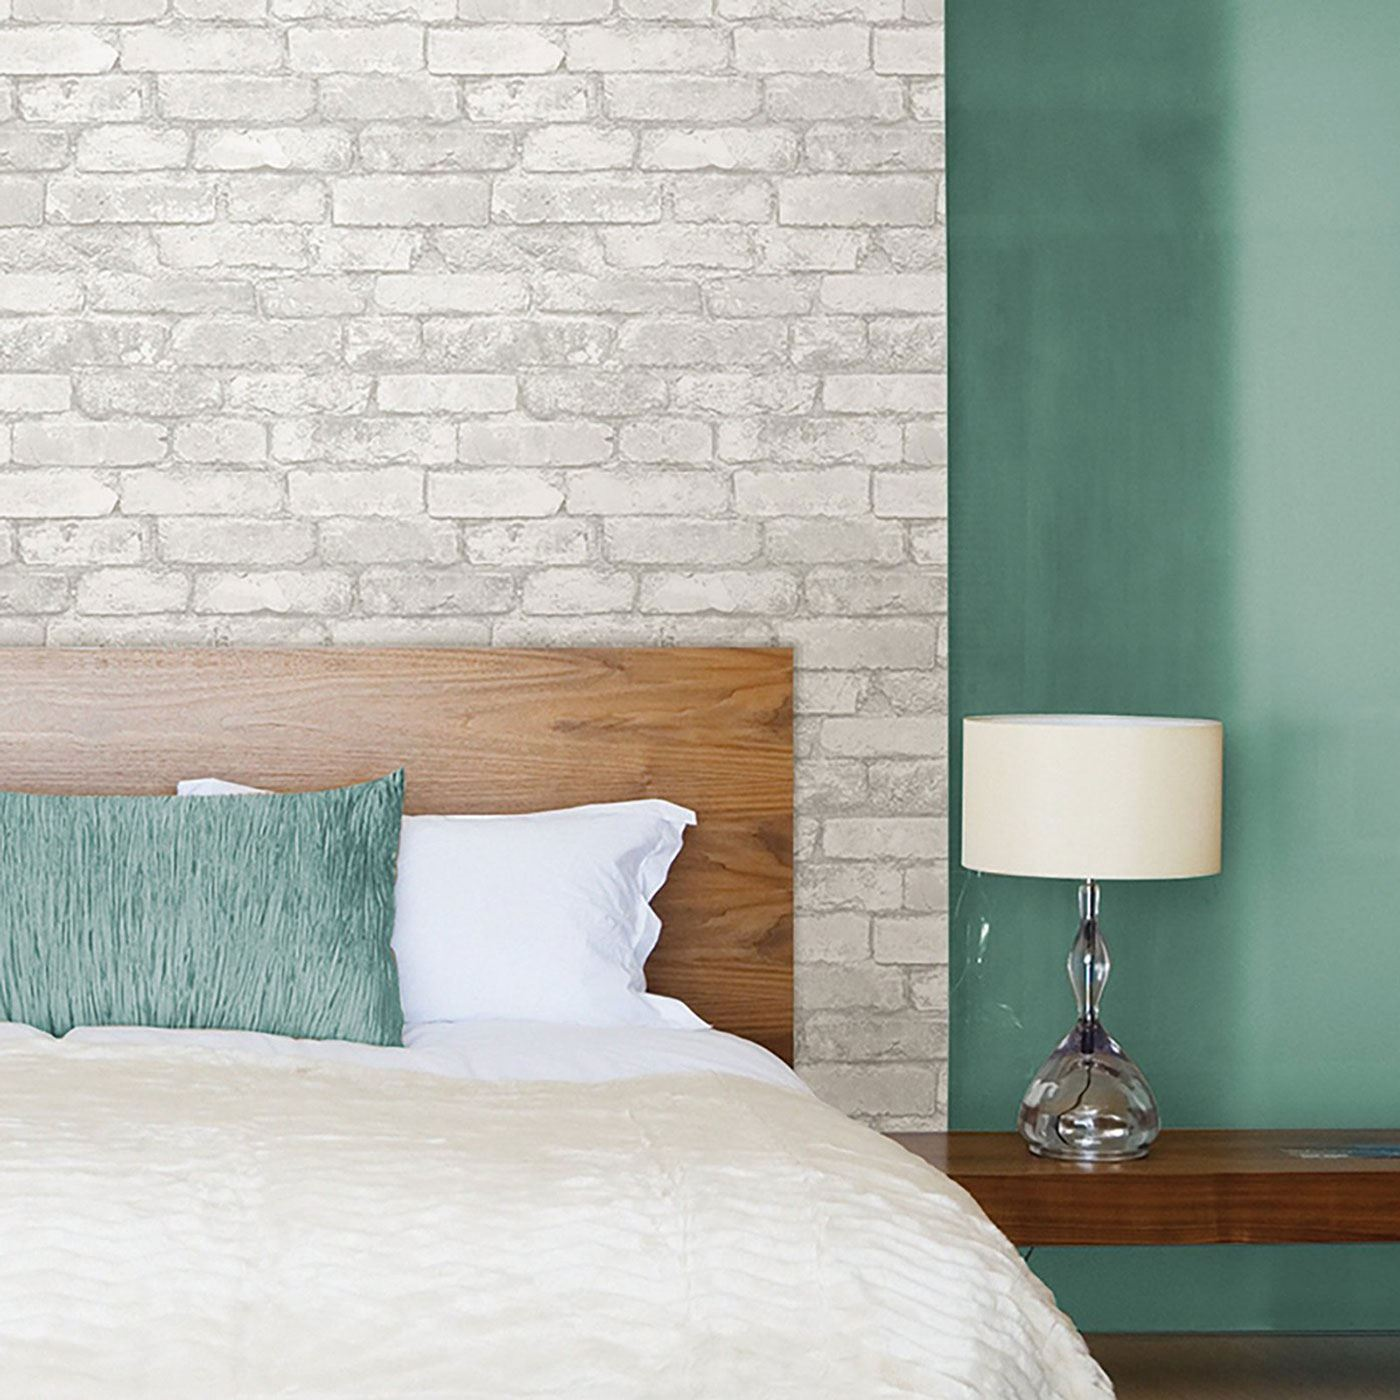 Details about NUWALLPAPER GREY AND WHITE BRICK PEEL & STICK WALLPAPER -  NU1653 - FEATURE WALL